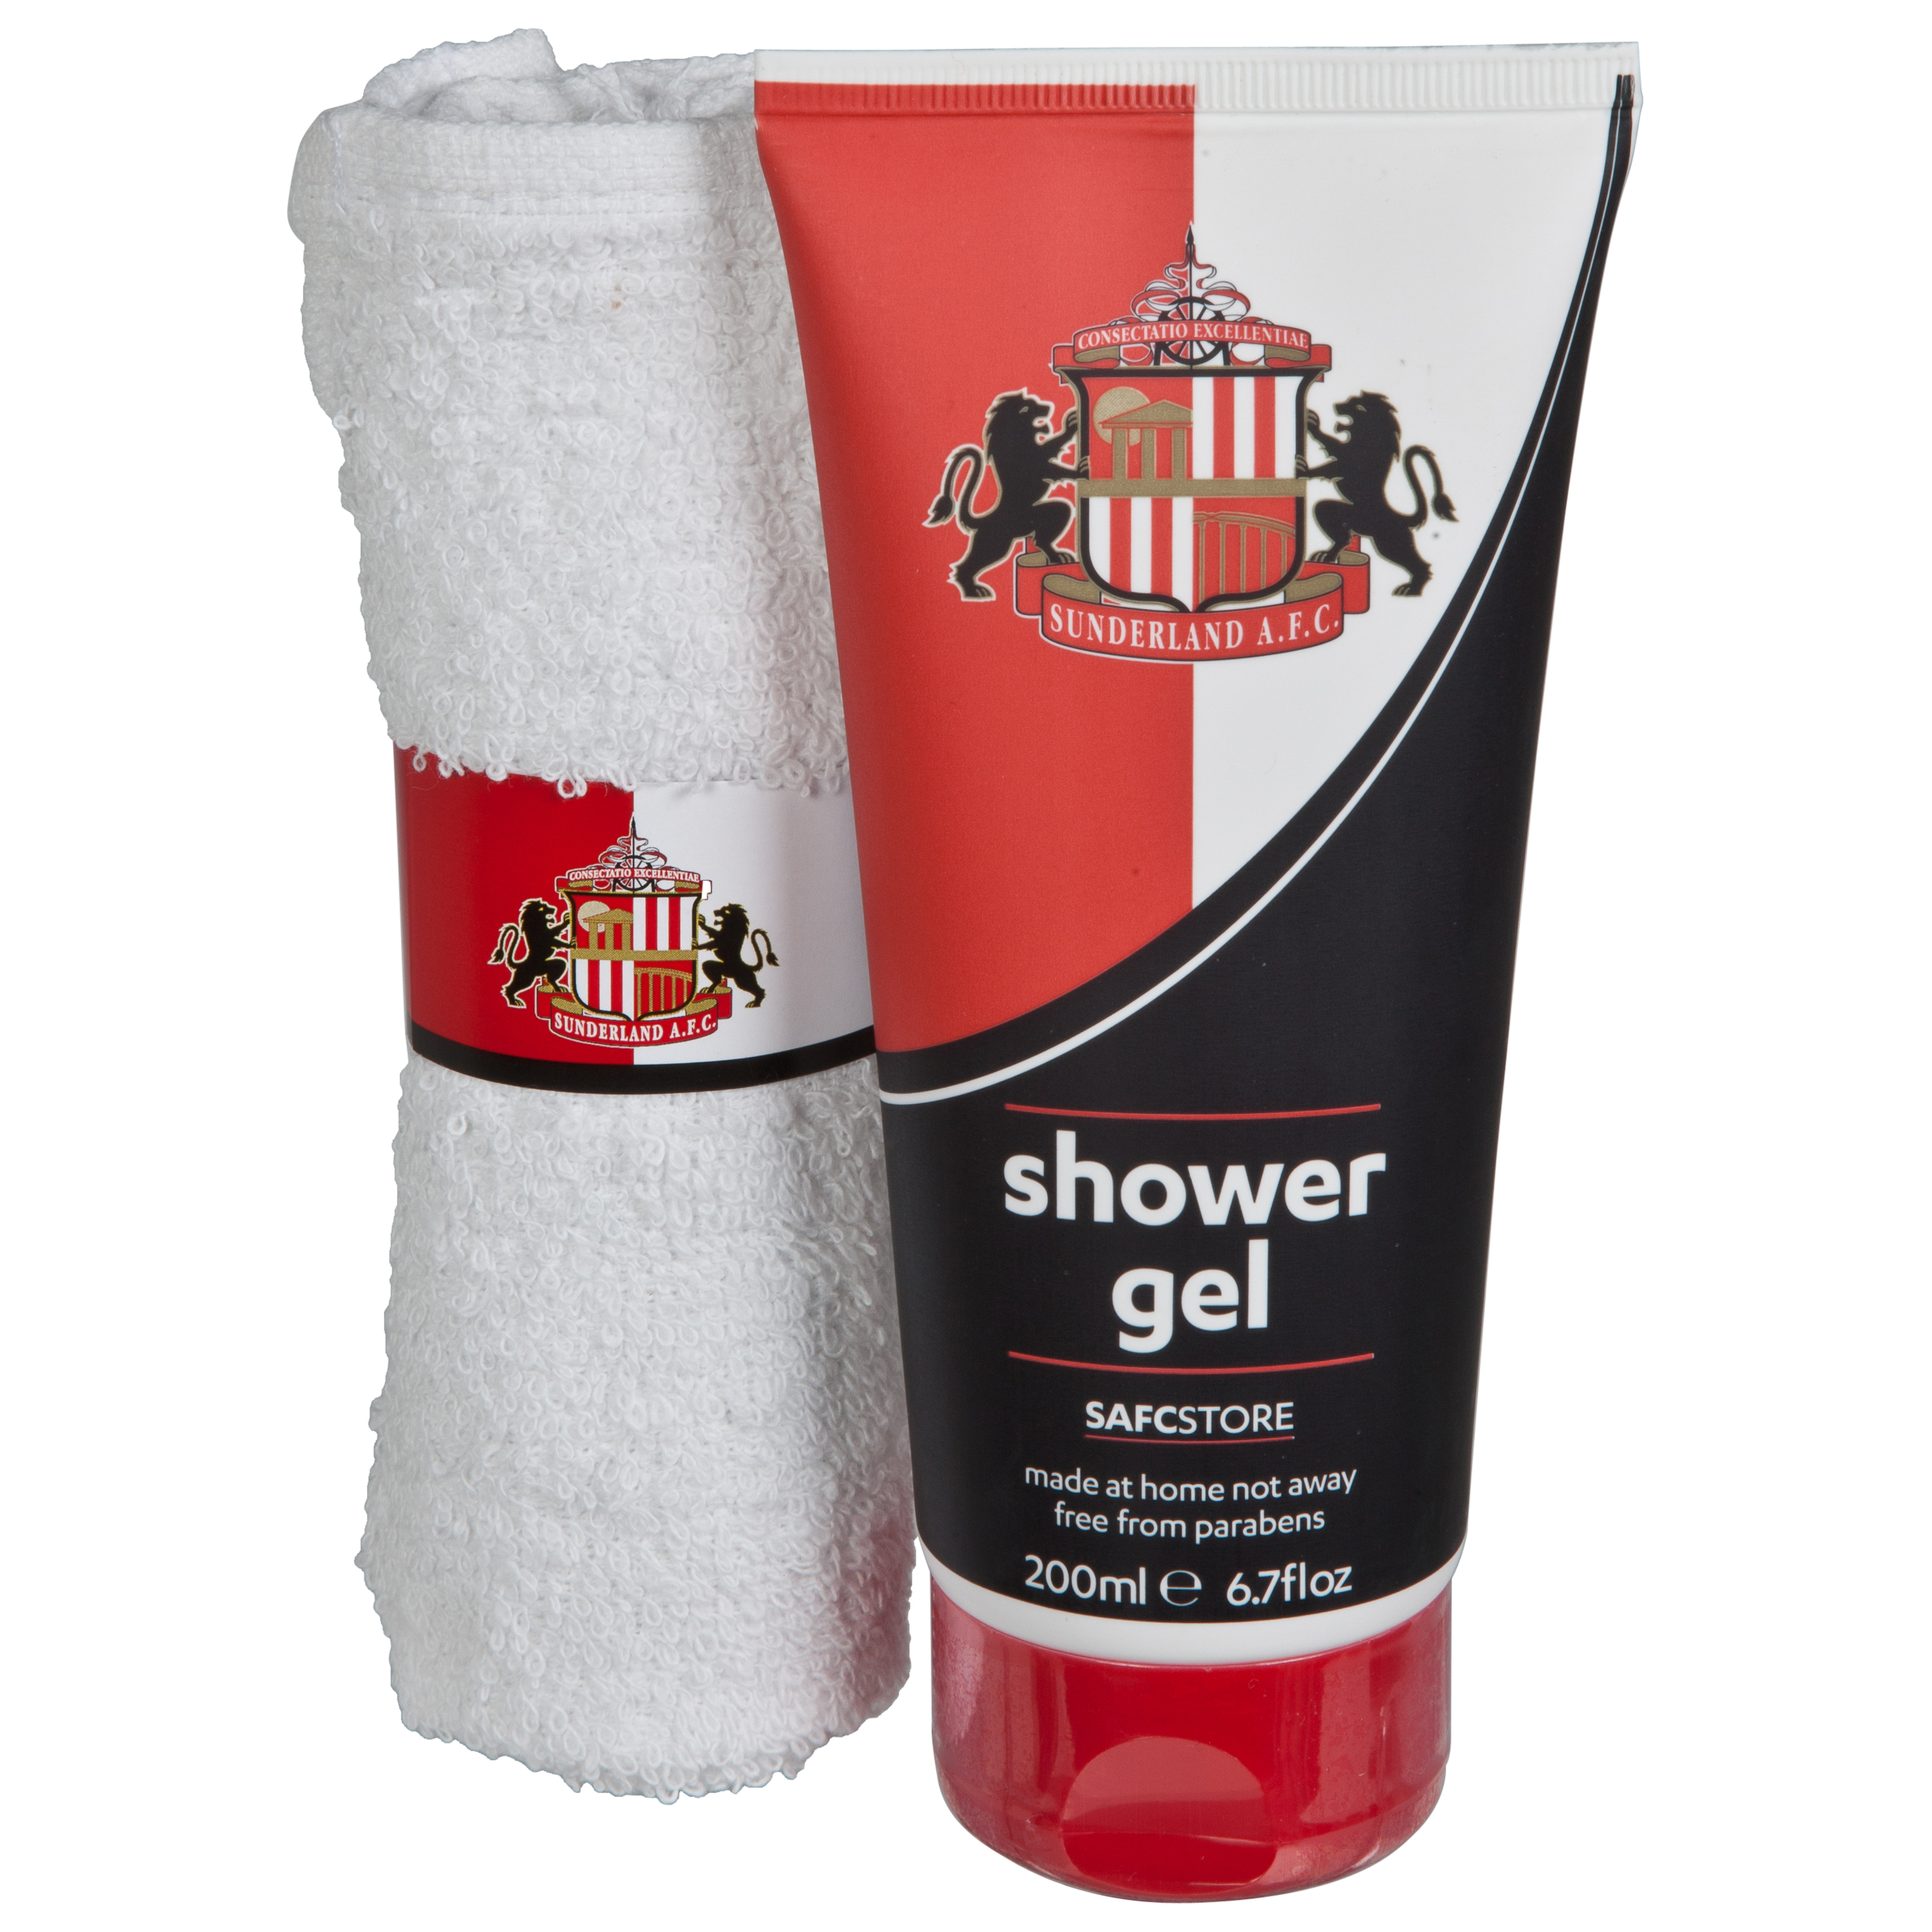 Sunderland Shower Gel and Face Cloth Gift Set